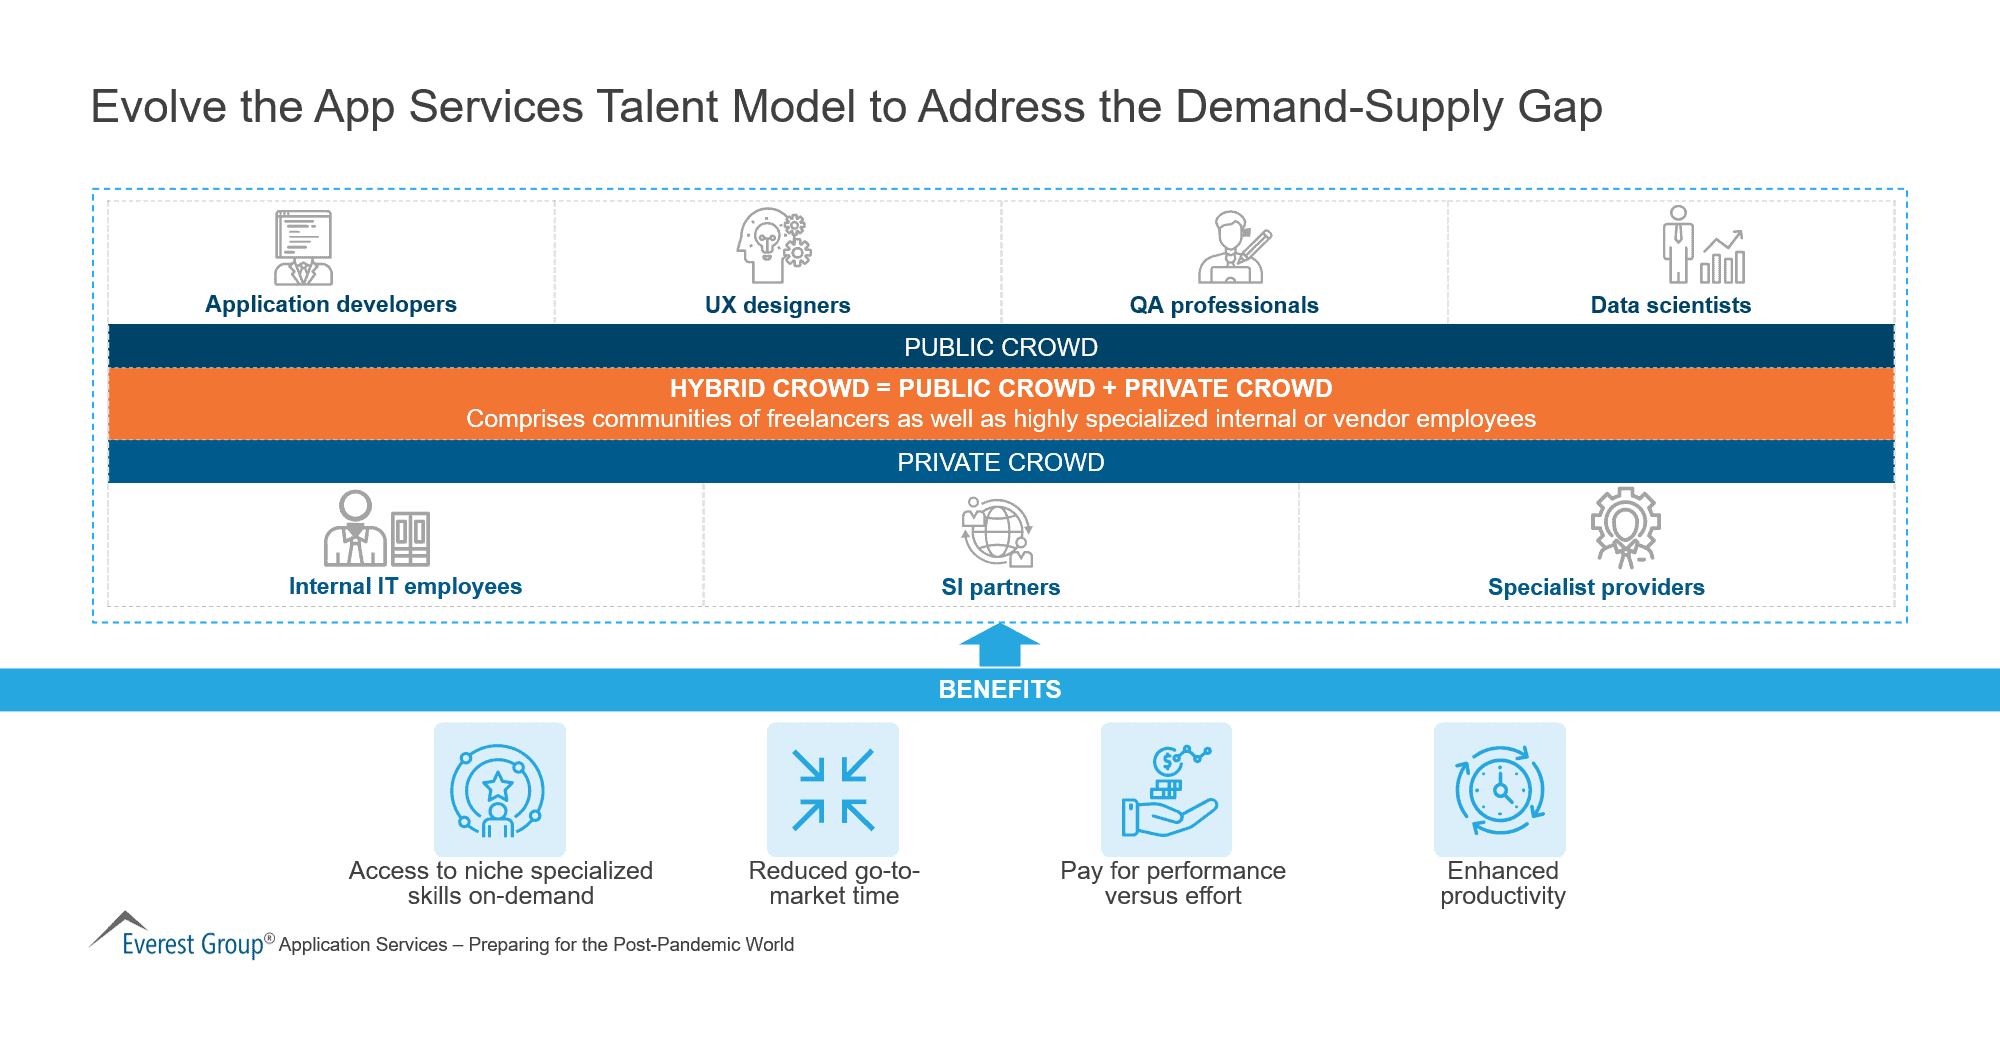 Evolve the App Services Talent Model to Address the Demand-Supply Gap